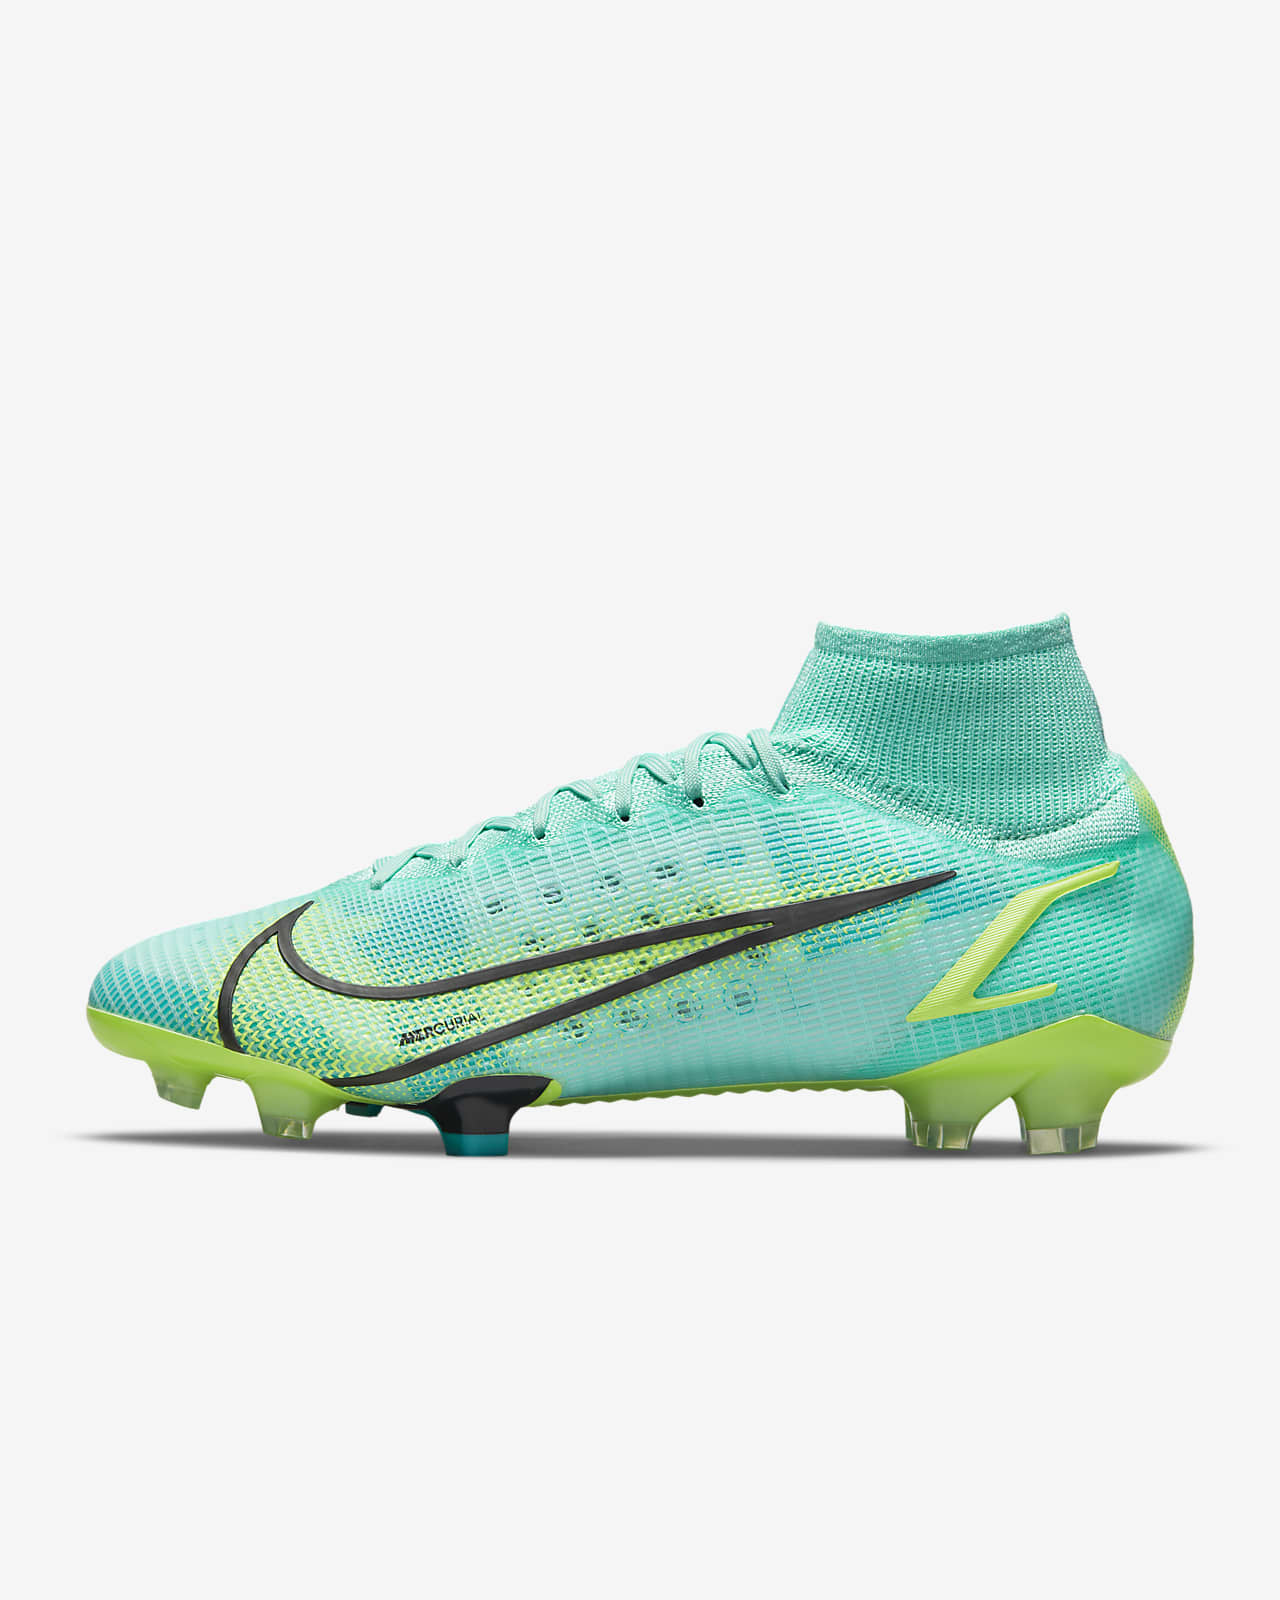 Nike Mercurial Superfly 8 Elite FG Firm-Ground Football Boots